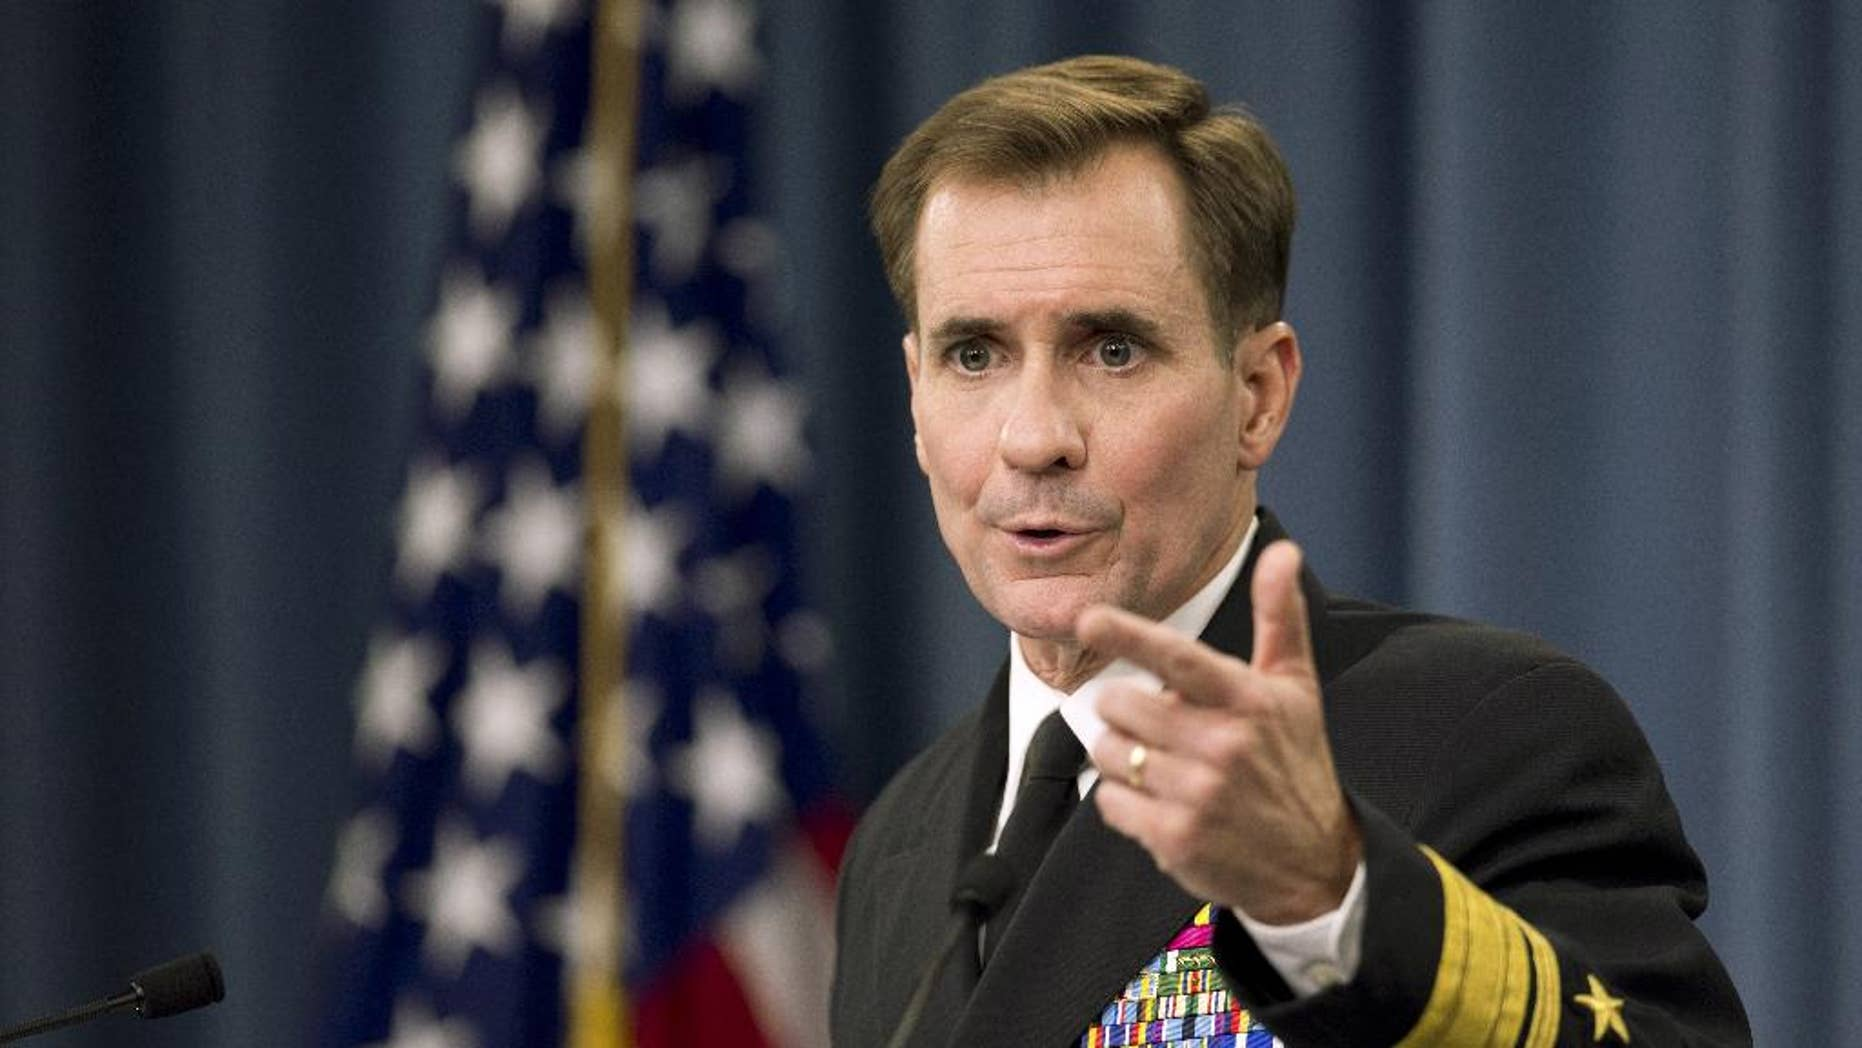 FILE - In this Nov. 7, 2014 file photo, Department of Defense Press Secretary Rear Admiral John Kirby, speaks to reporters during a news conference, at the Pentagon. U.S. officials say former Pentagon spokesman Admiral John Kirby will retire from the military and move to the State Department to be that agency's new public face.   The officials say Secretary of State John Kerry tapped Kirby to be the department's spokesman. (AP Photo/Manuel Balce Ceneta)